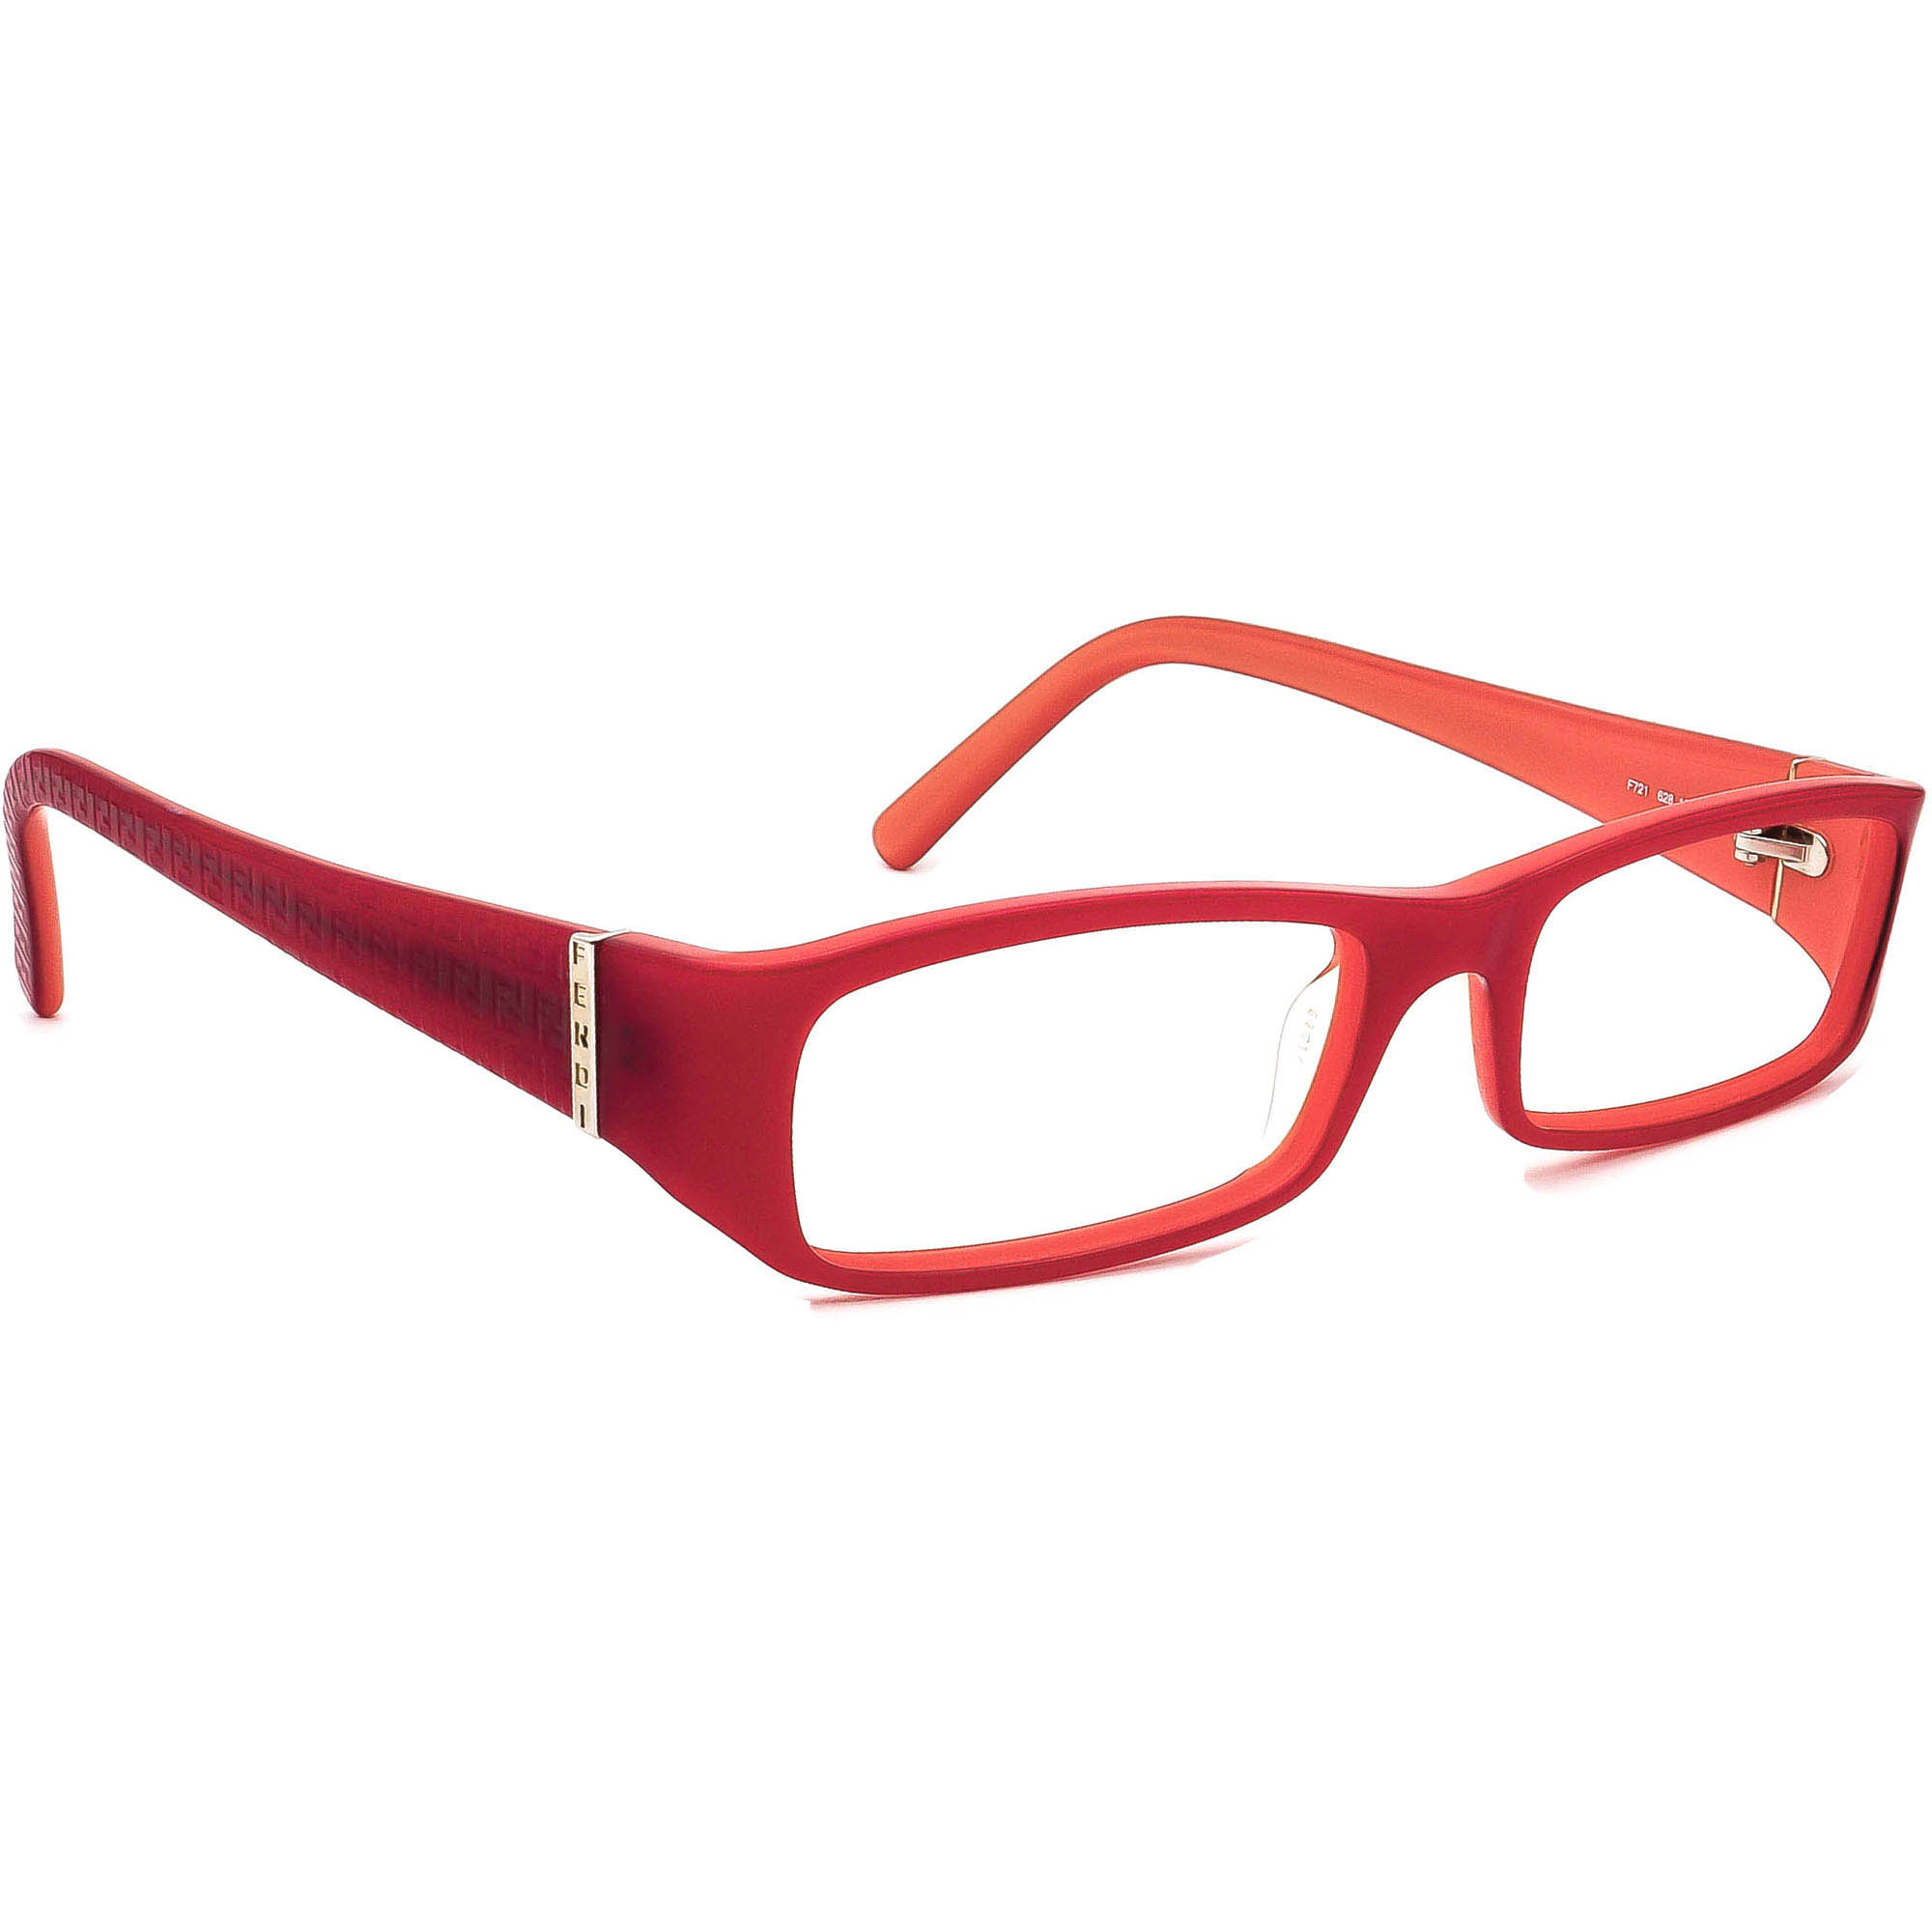 Fendi Women's Eyeglasses F721 628 Red/Orange Rectangular Frame Italy 53[]17 135